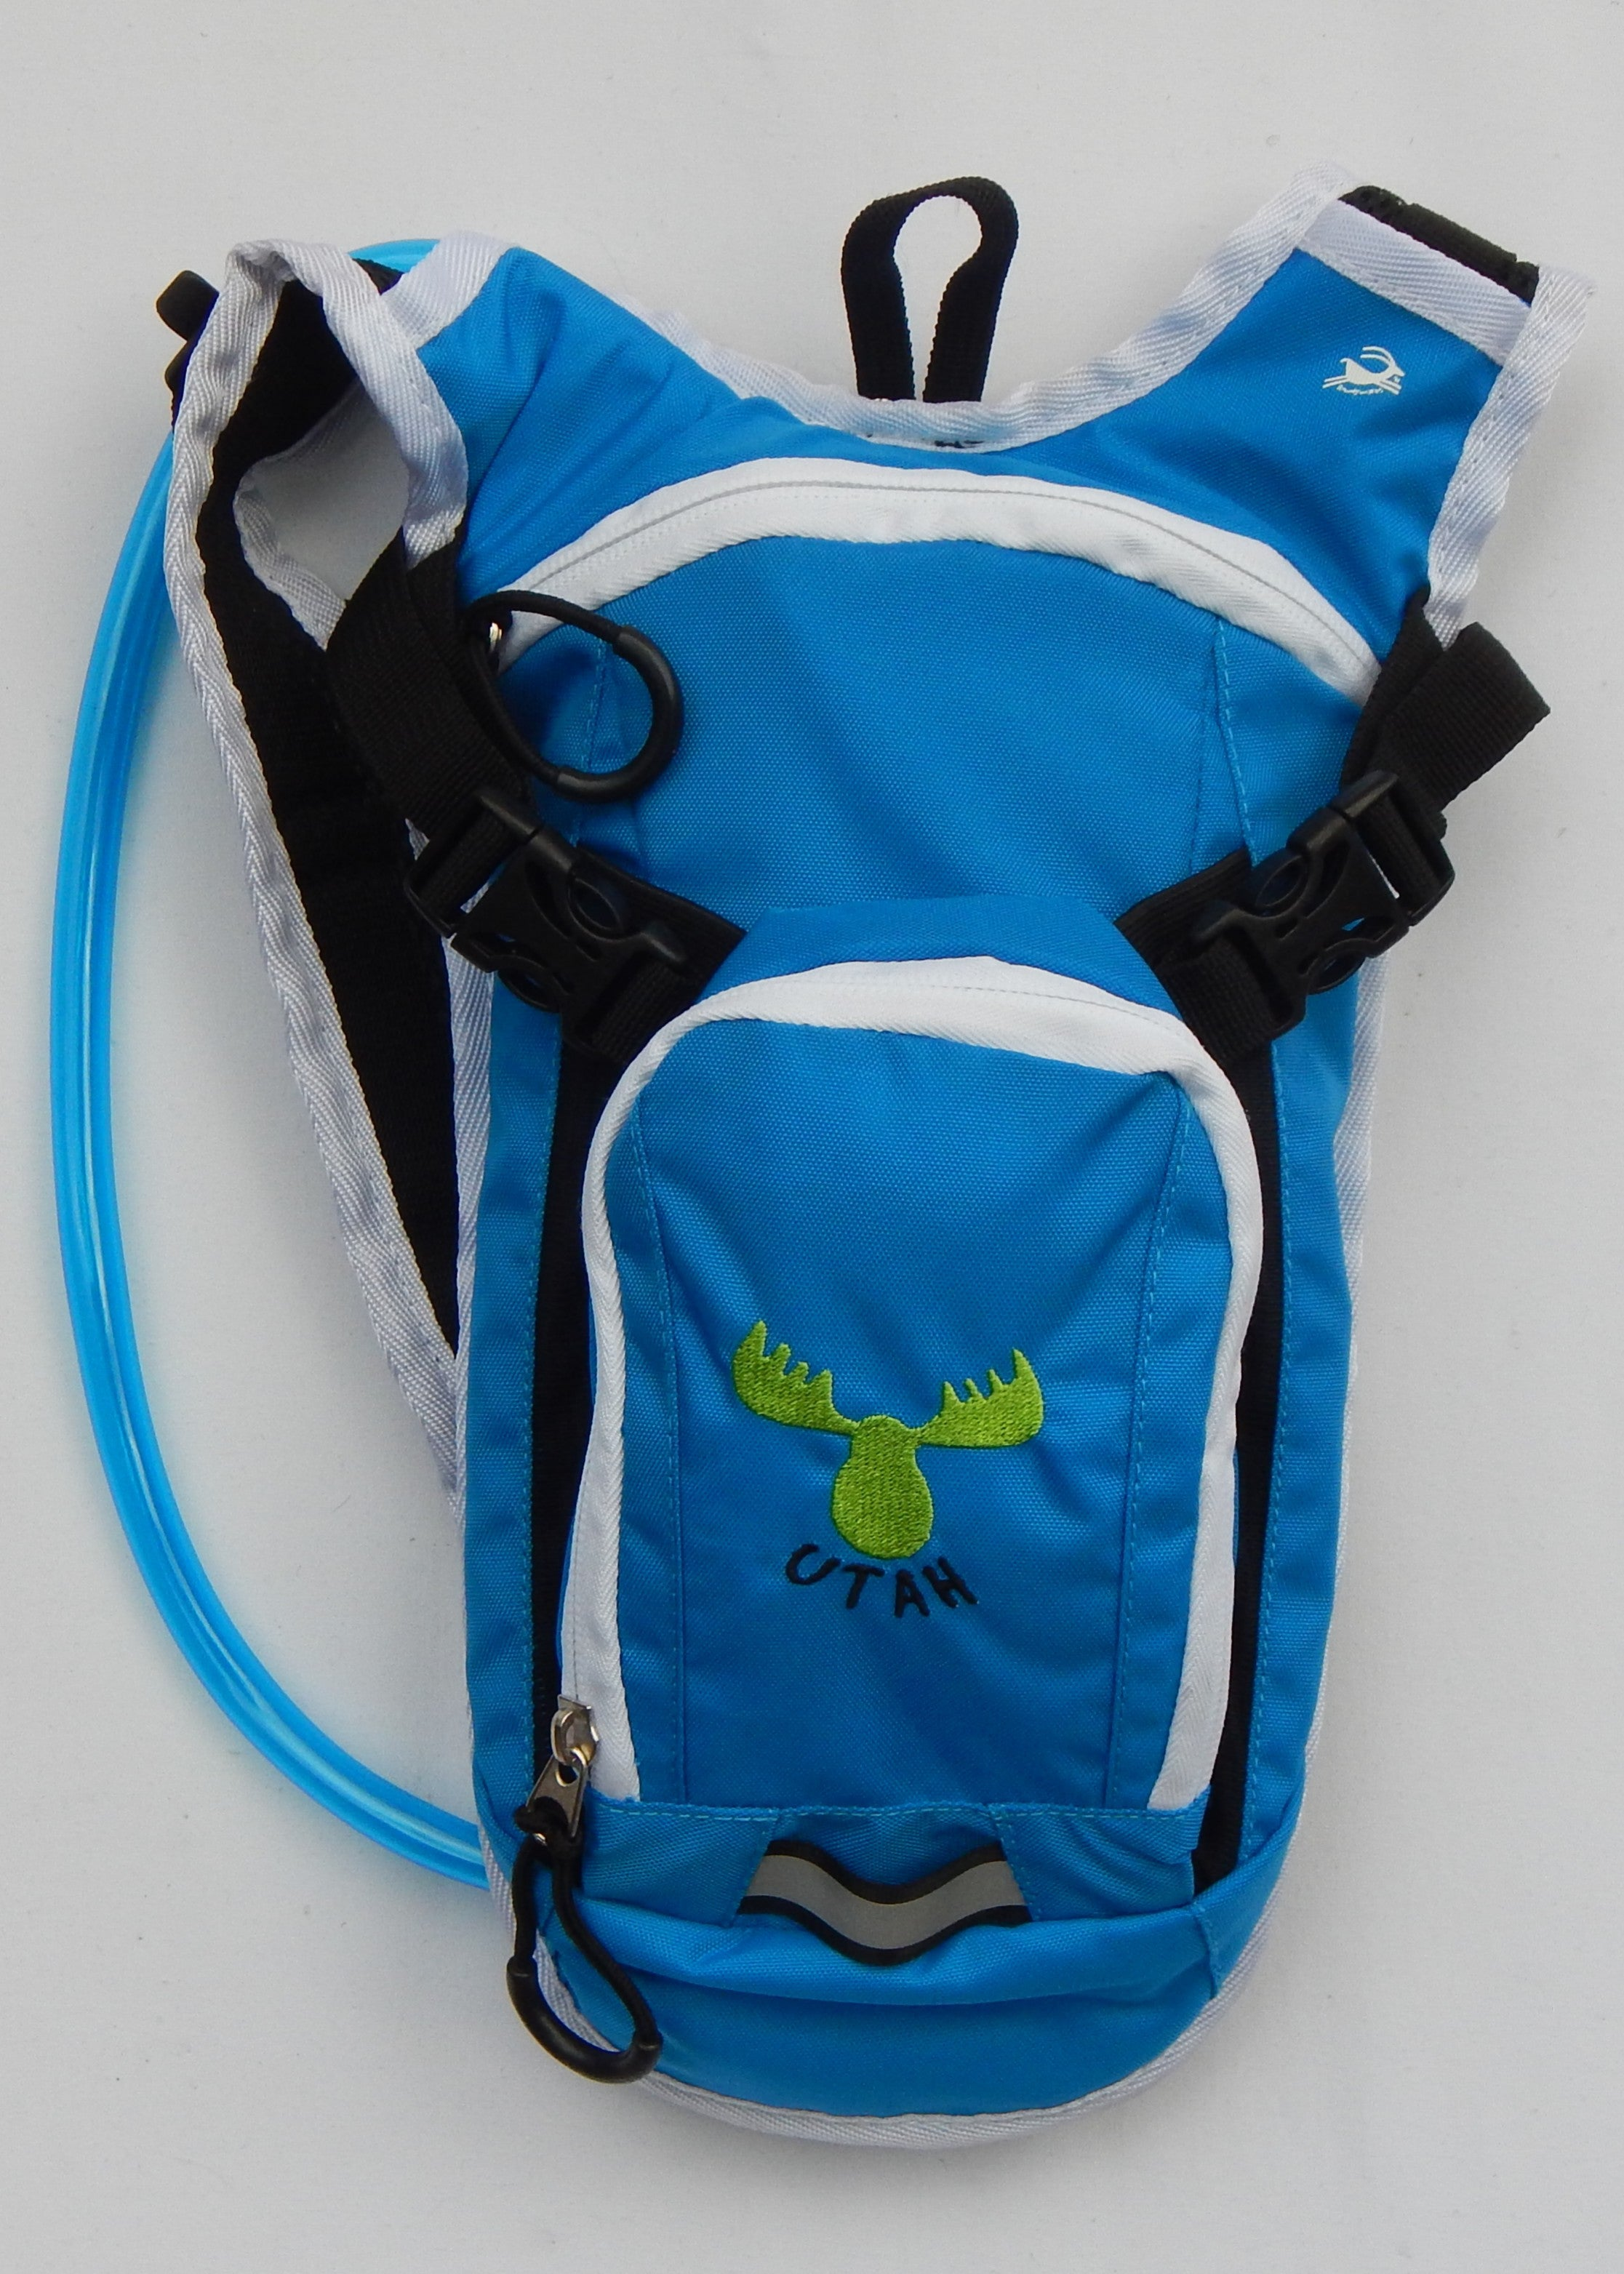 Youth Hydration Pack - Blue / Green UTAH Moose